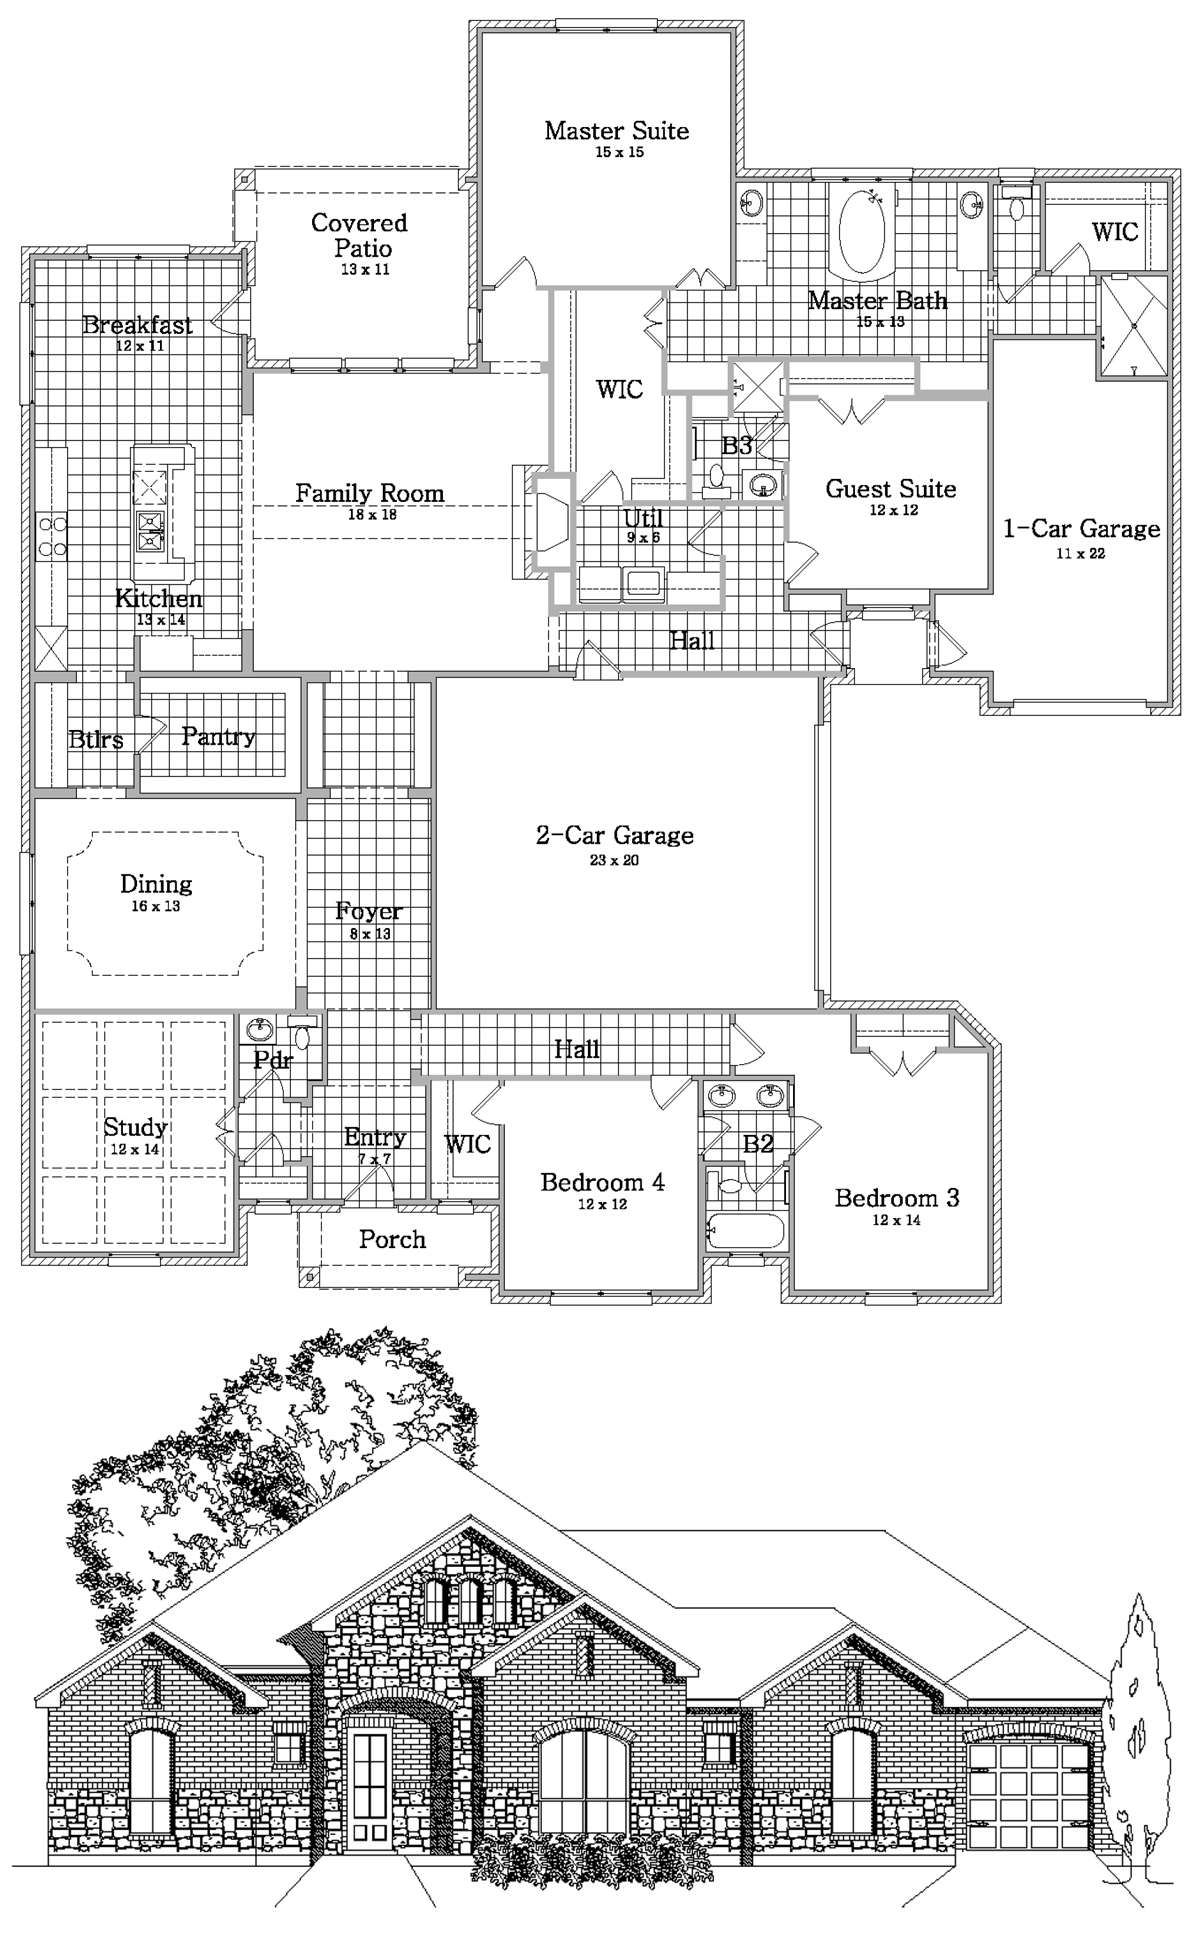 Siena Discover Energy Efficient Floor Plans For New Homes In San Antonio Texas Imagine Homes Floor Plans San Antonio Texas New Homes